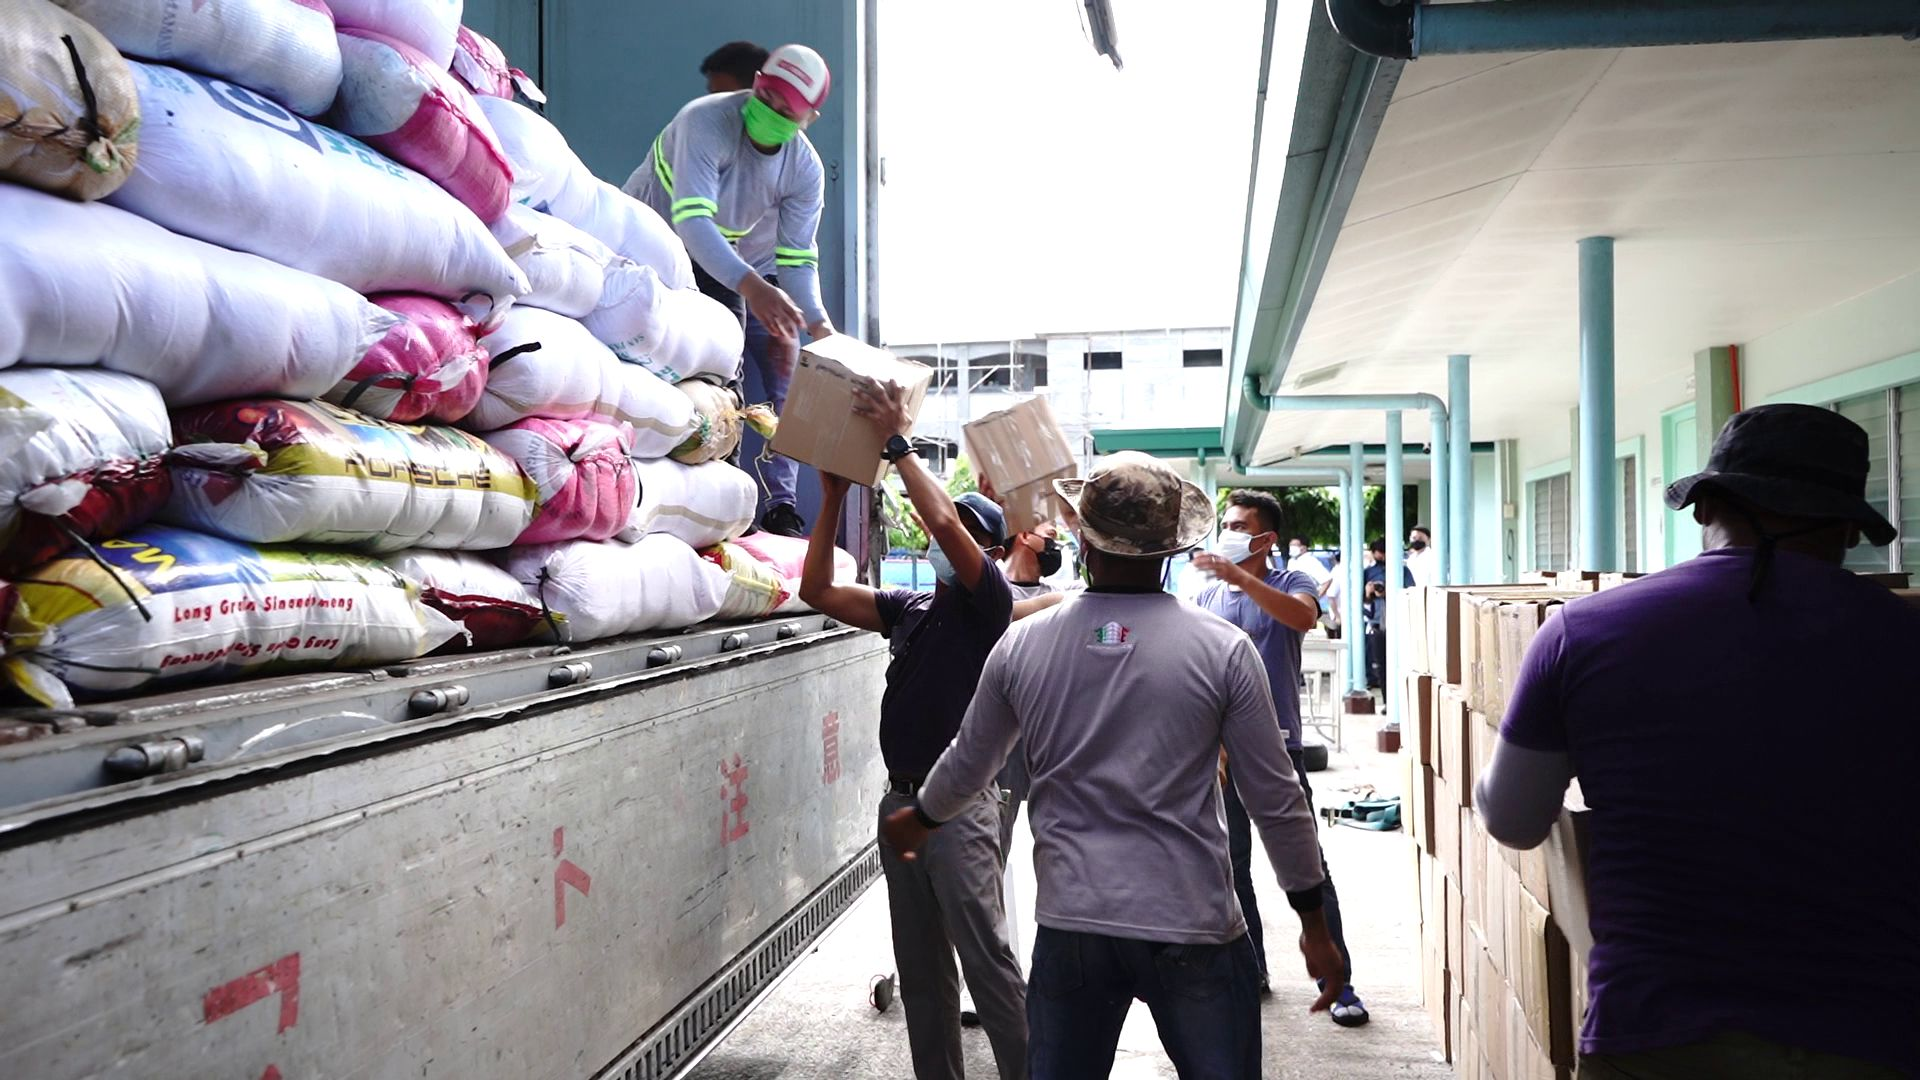 INC sends aid to evacuees from Taal Volcano unrest